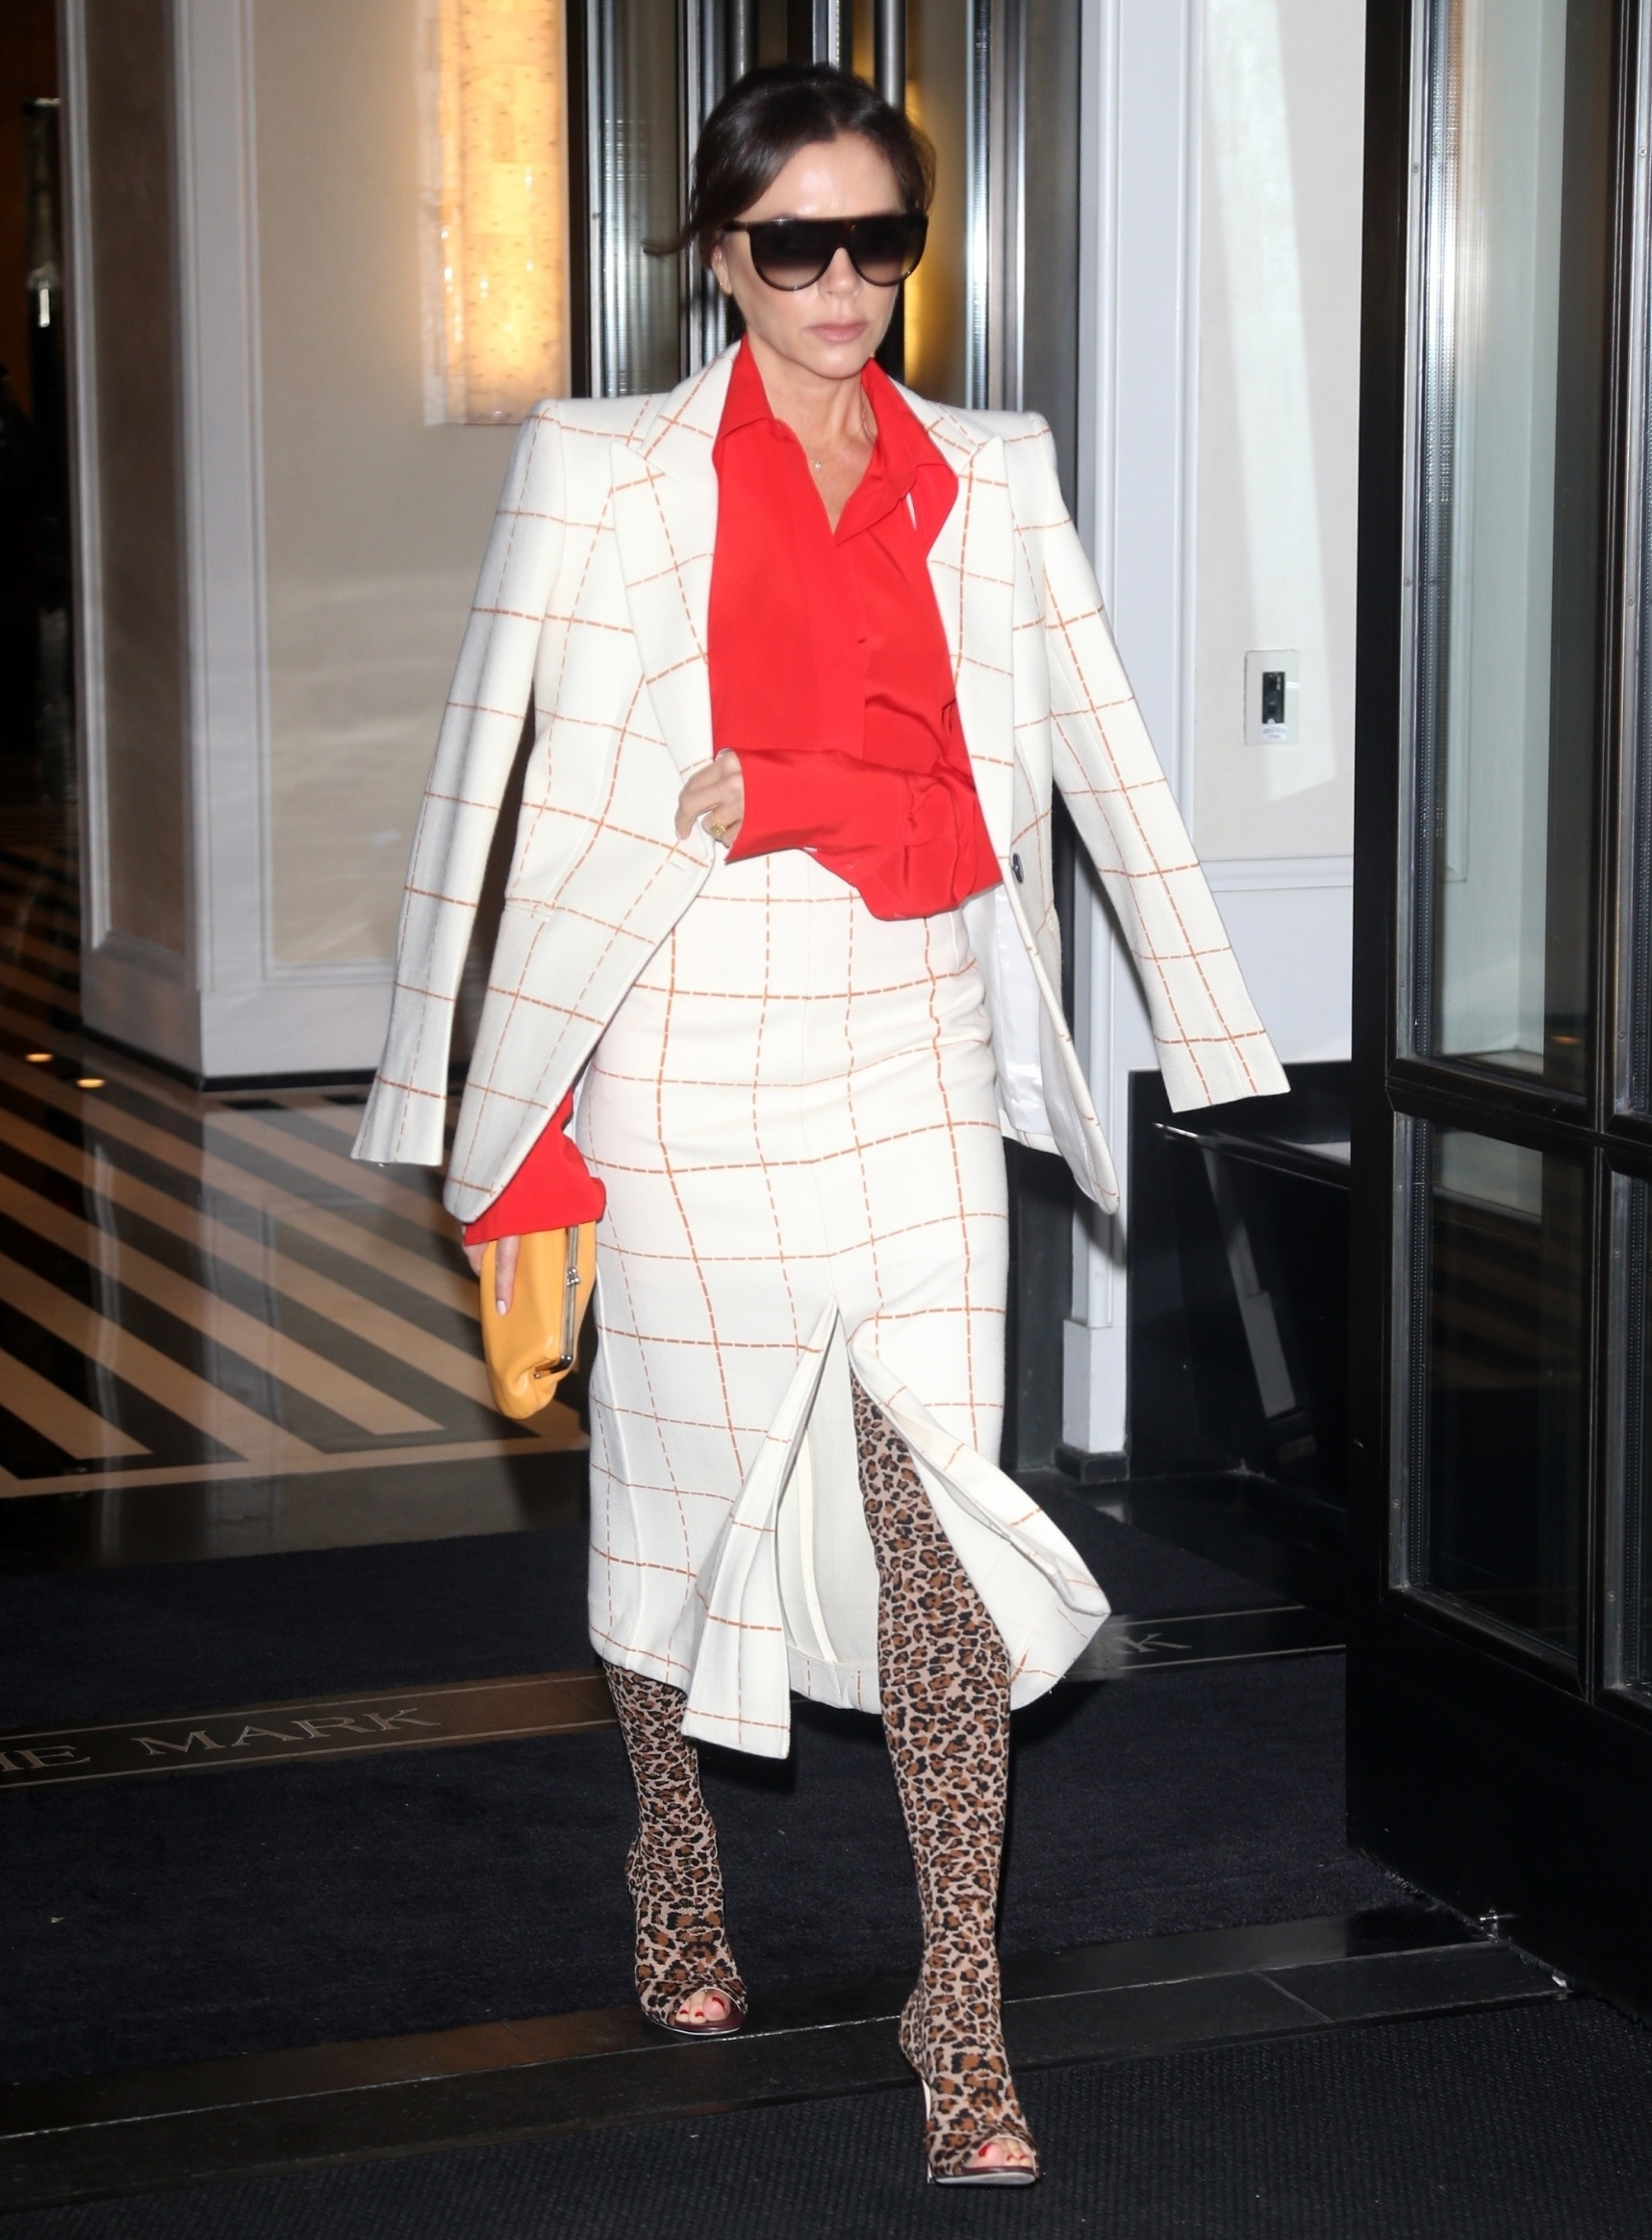 New York, NY  - Fashion Icon and Former Spice Girl, Victoria Beckham causes the paparazzi to go crazy as she is seen leaving a building heading to her car in the Upper Eastside of New York. Victoria looks like a true businesswoman as she dons a gingham suit dress and leopard shoes.  *UK Clients - Pictures Containing Children Please Pixelate Face Prior To Publication*, Image: 477434777, License: Rights-managed, Restrictions: , Model Release: no, Credit line: DARA / BACKGRID / Backgrid USA / Profimedia